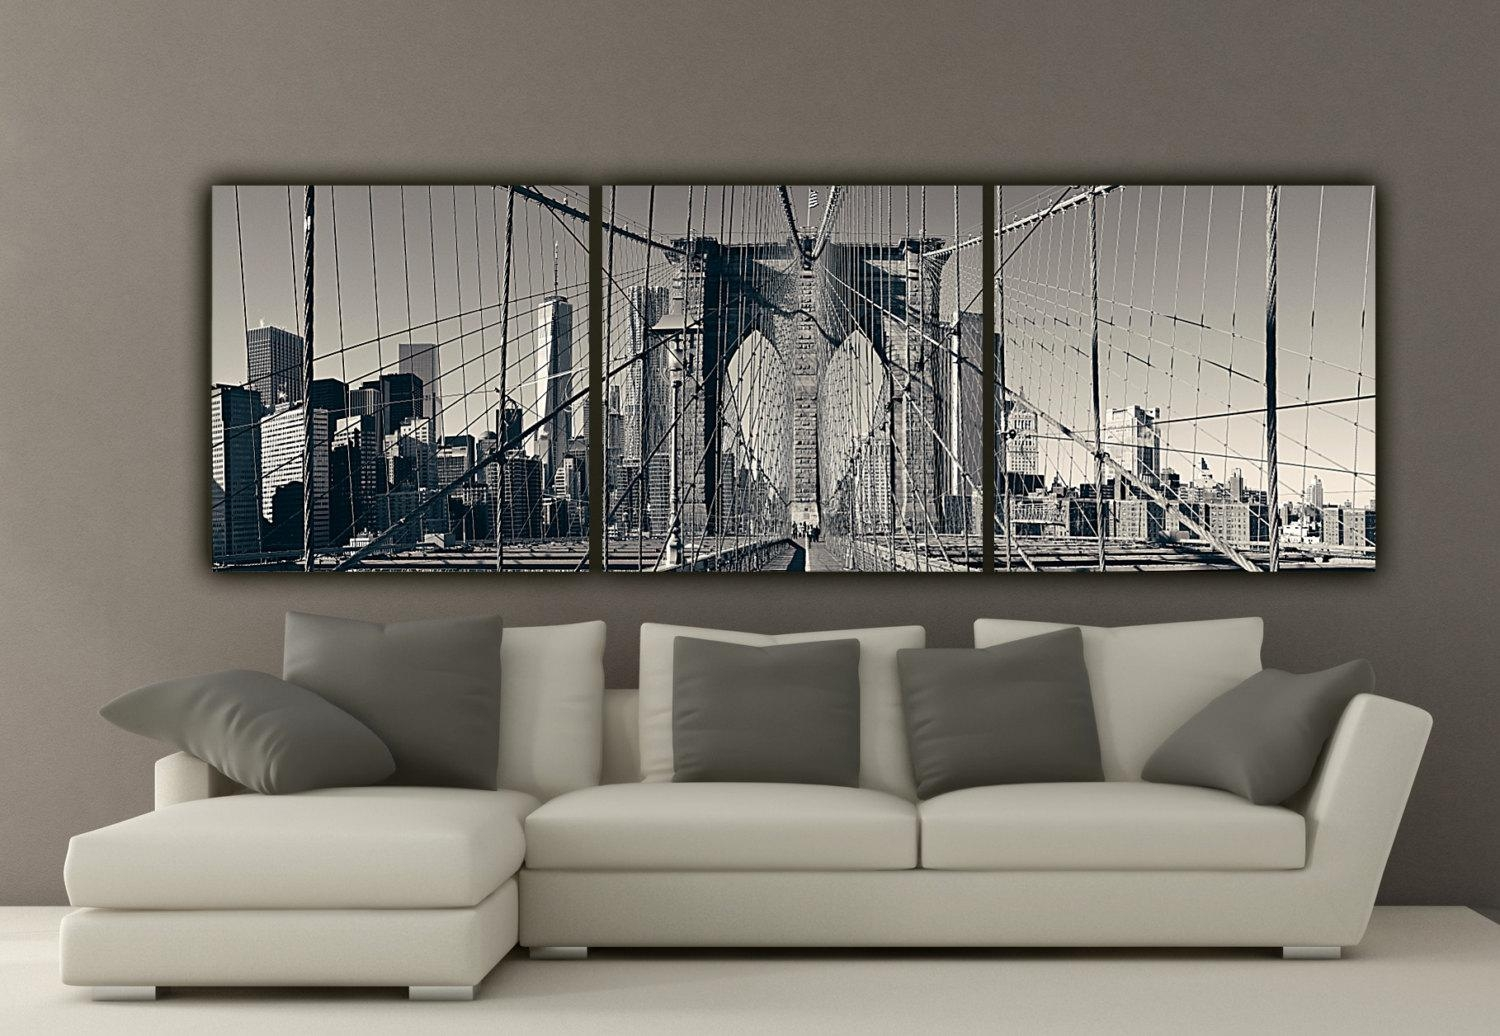 New York Brooklyn Bridge Canvas Wall Art Black And White New for Huge Wall Art Canvas